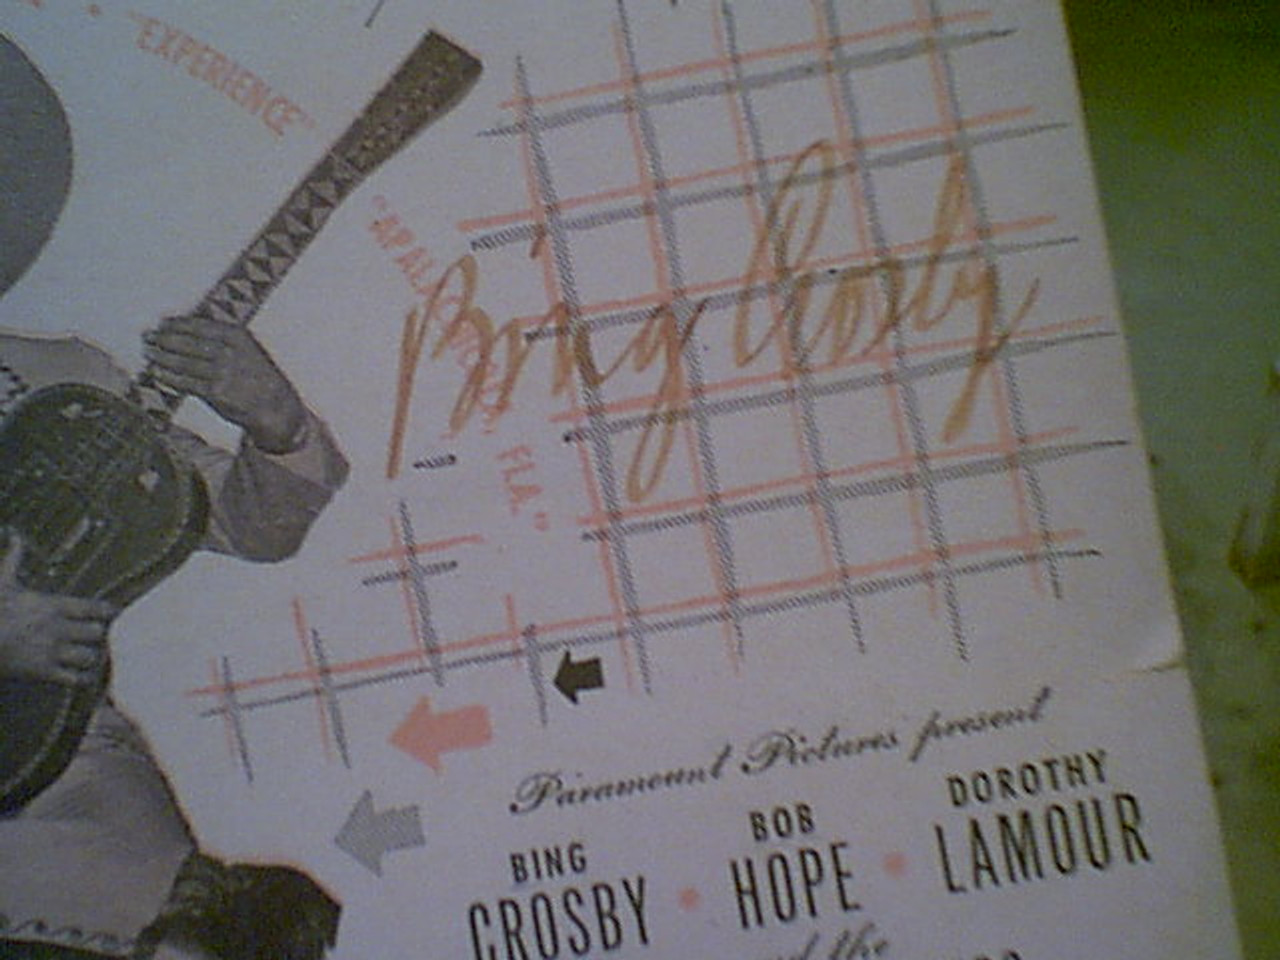 """Hope, Bob Dorothy Lamour Bing Crosby """"But Beautiful"""" 1947 Sheet Music Signed Autograph """"Road To Rio"""""""